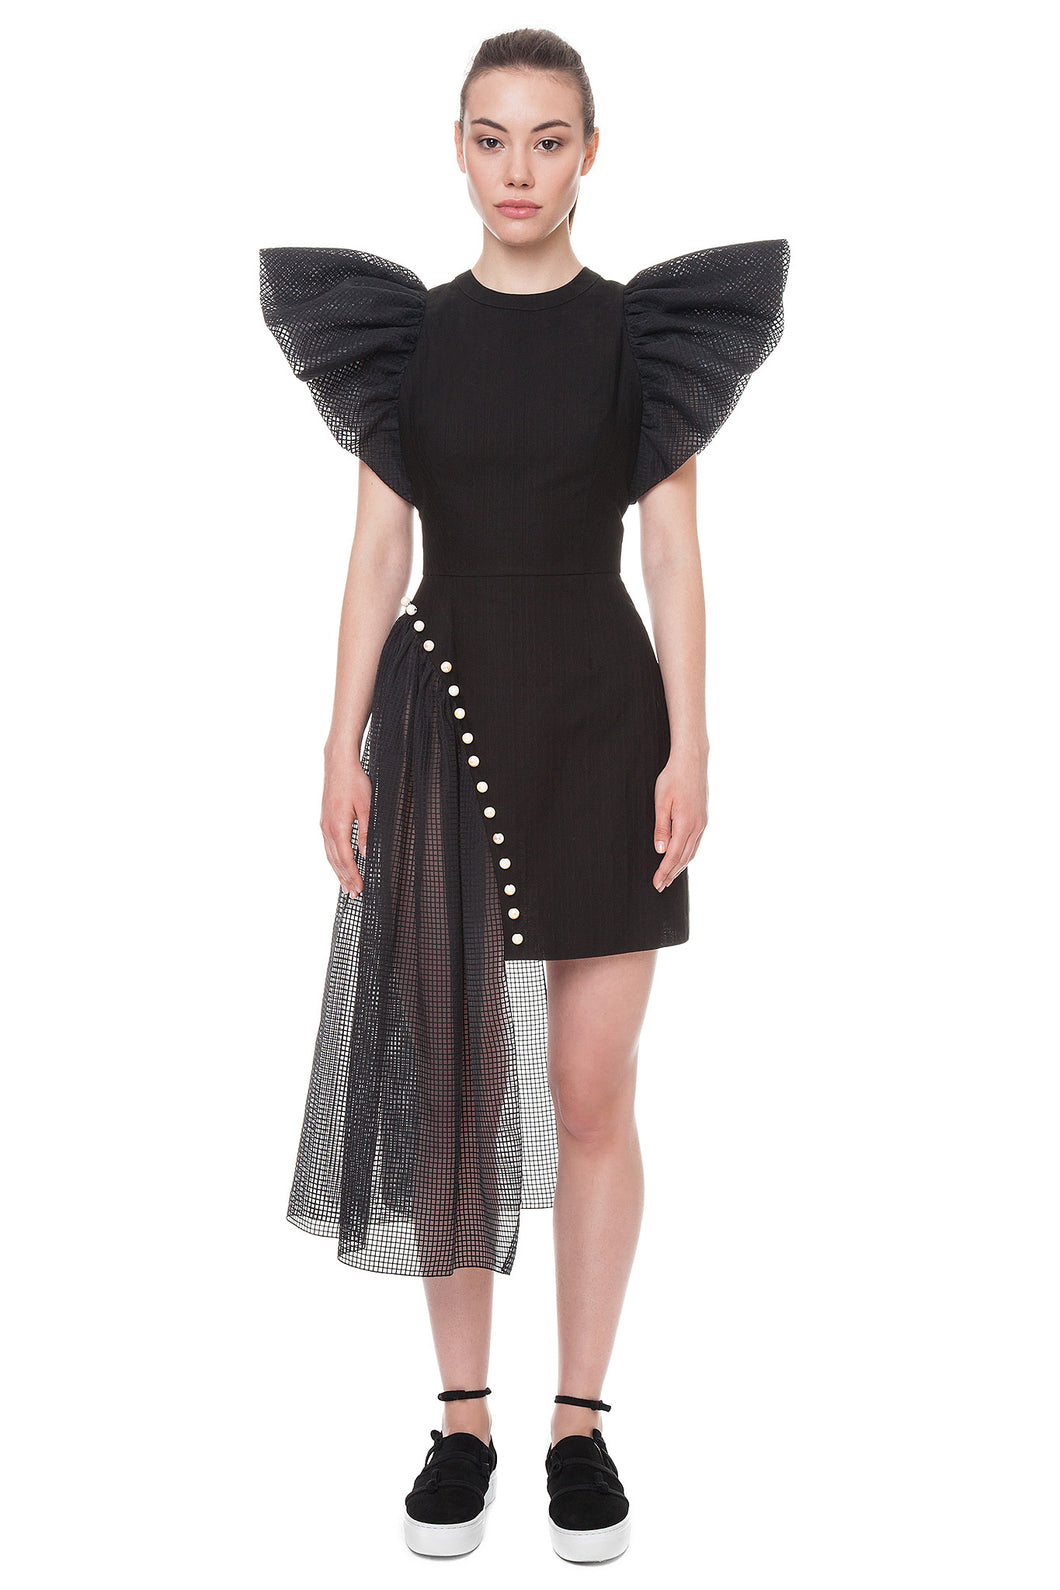 Black wings dress - Anna K